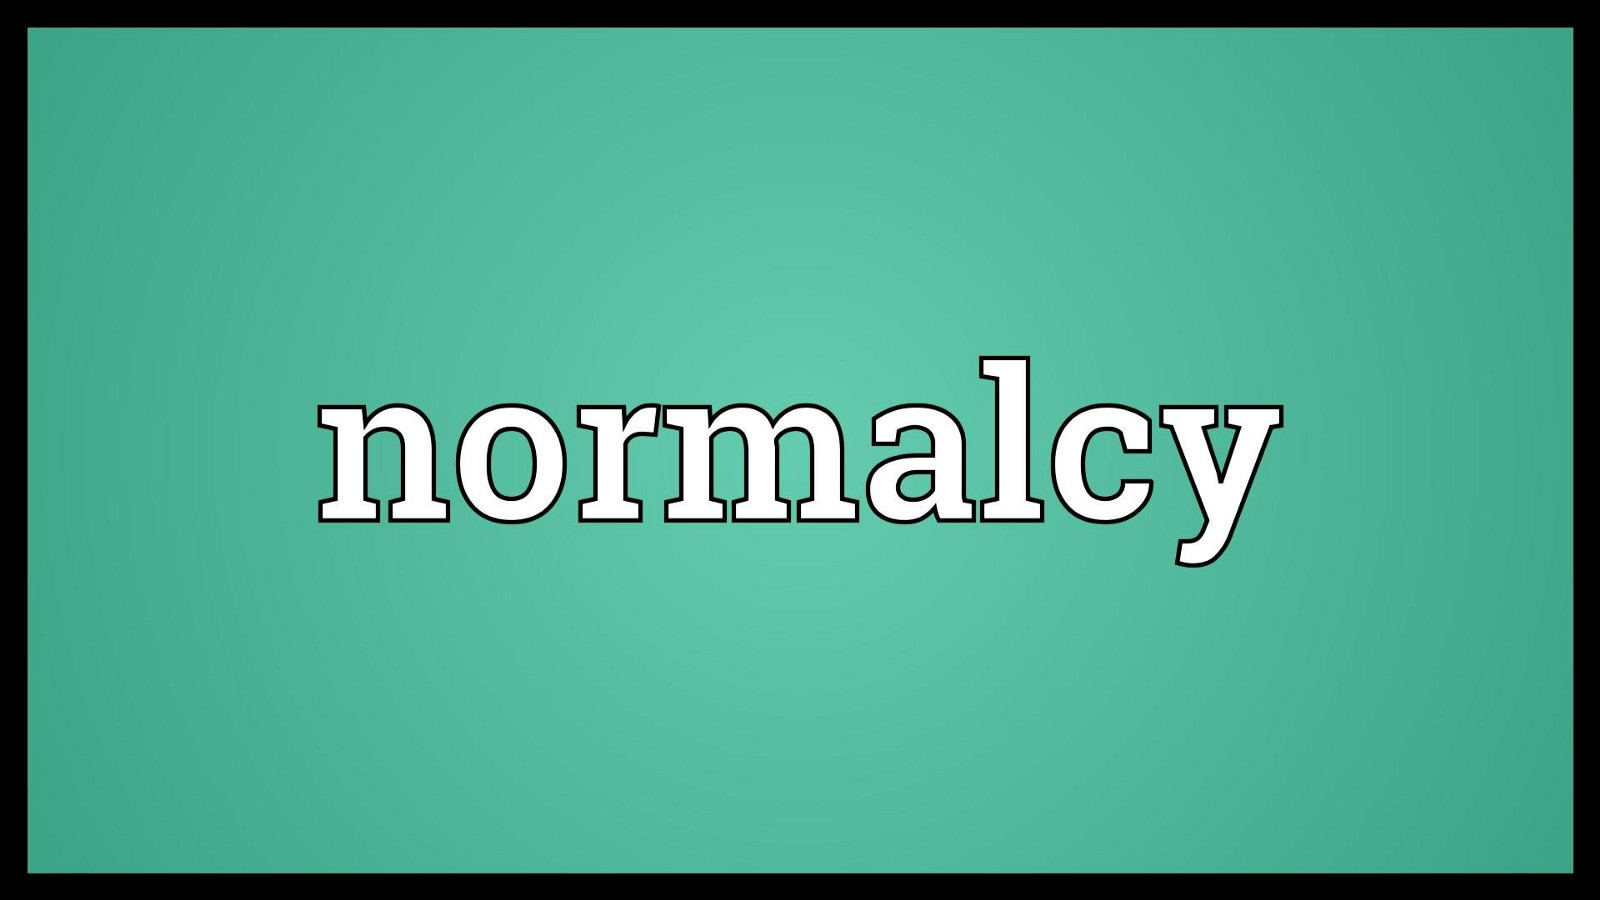 Normacy